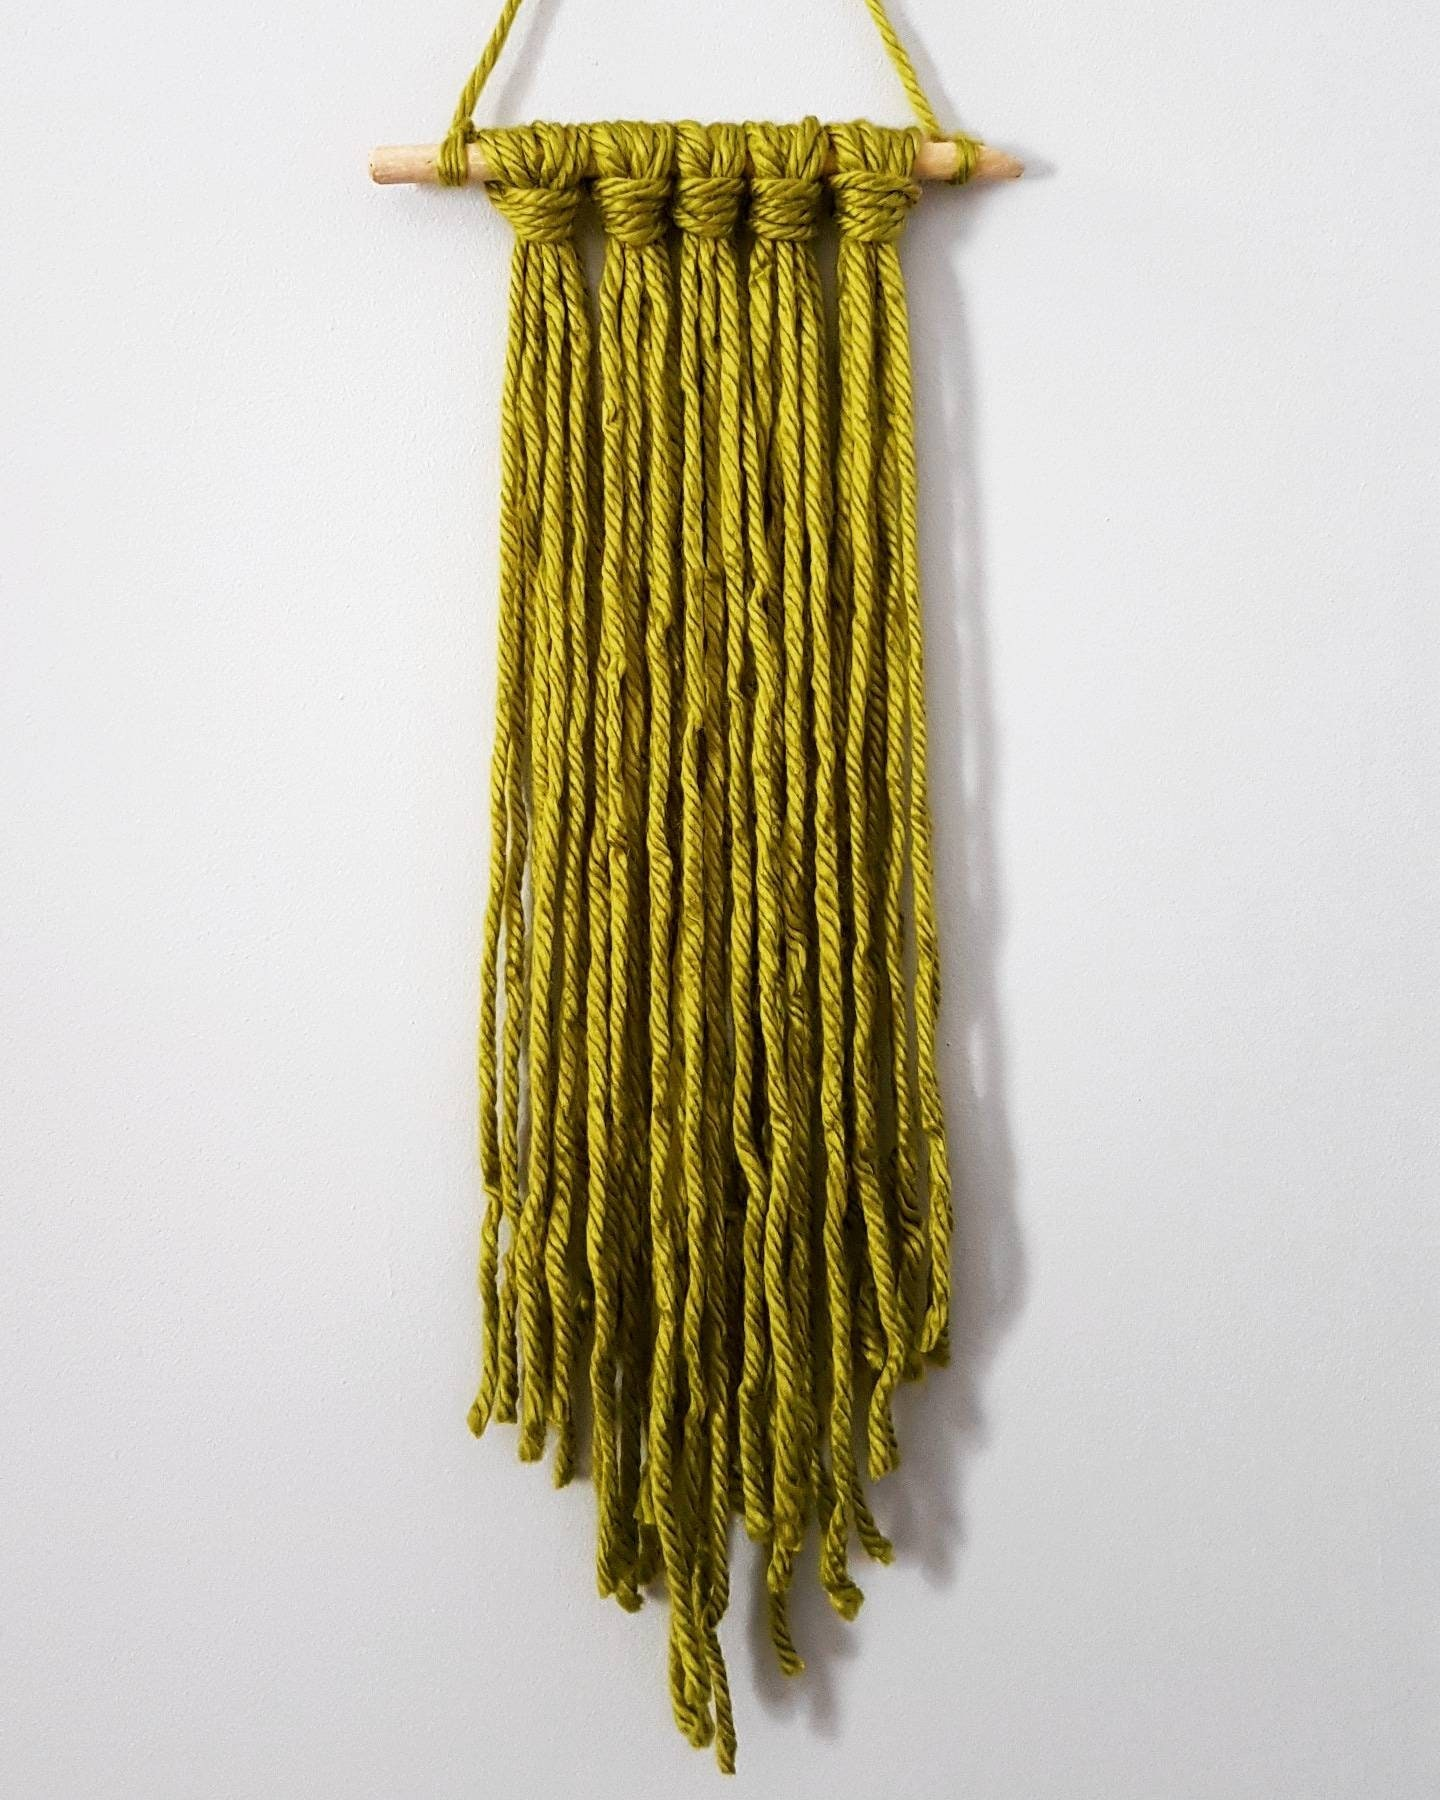 Gorgeous Green Macrame Wall Hanging on Hand Picked Driftwood